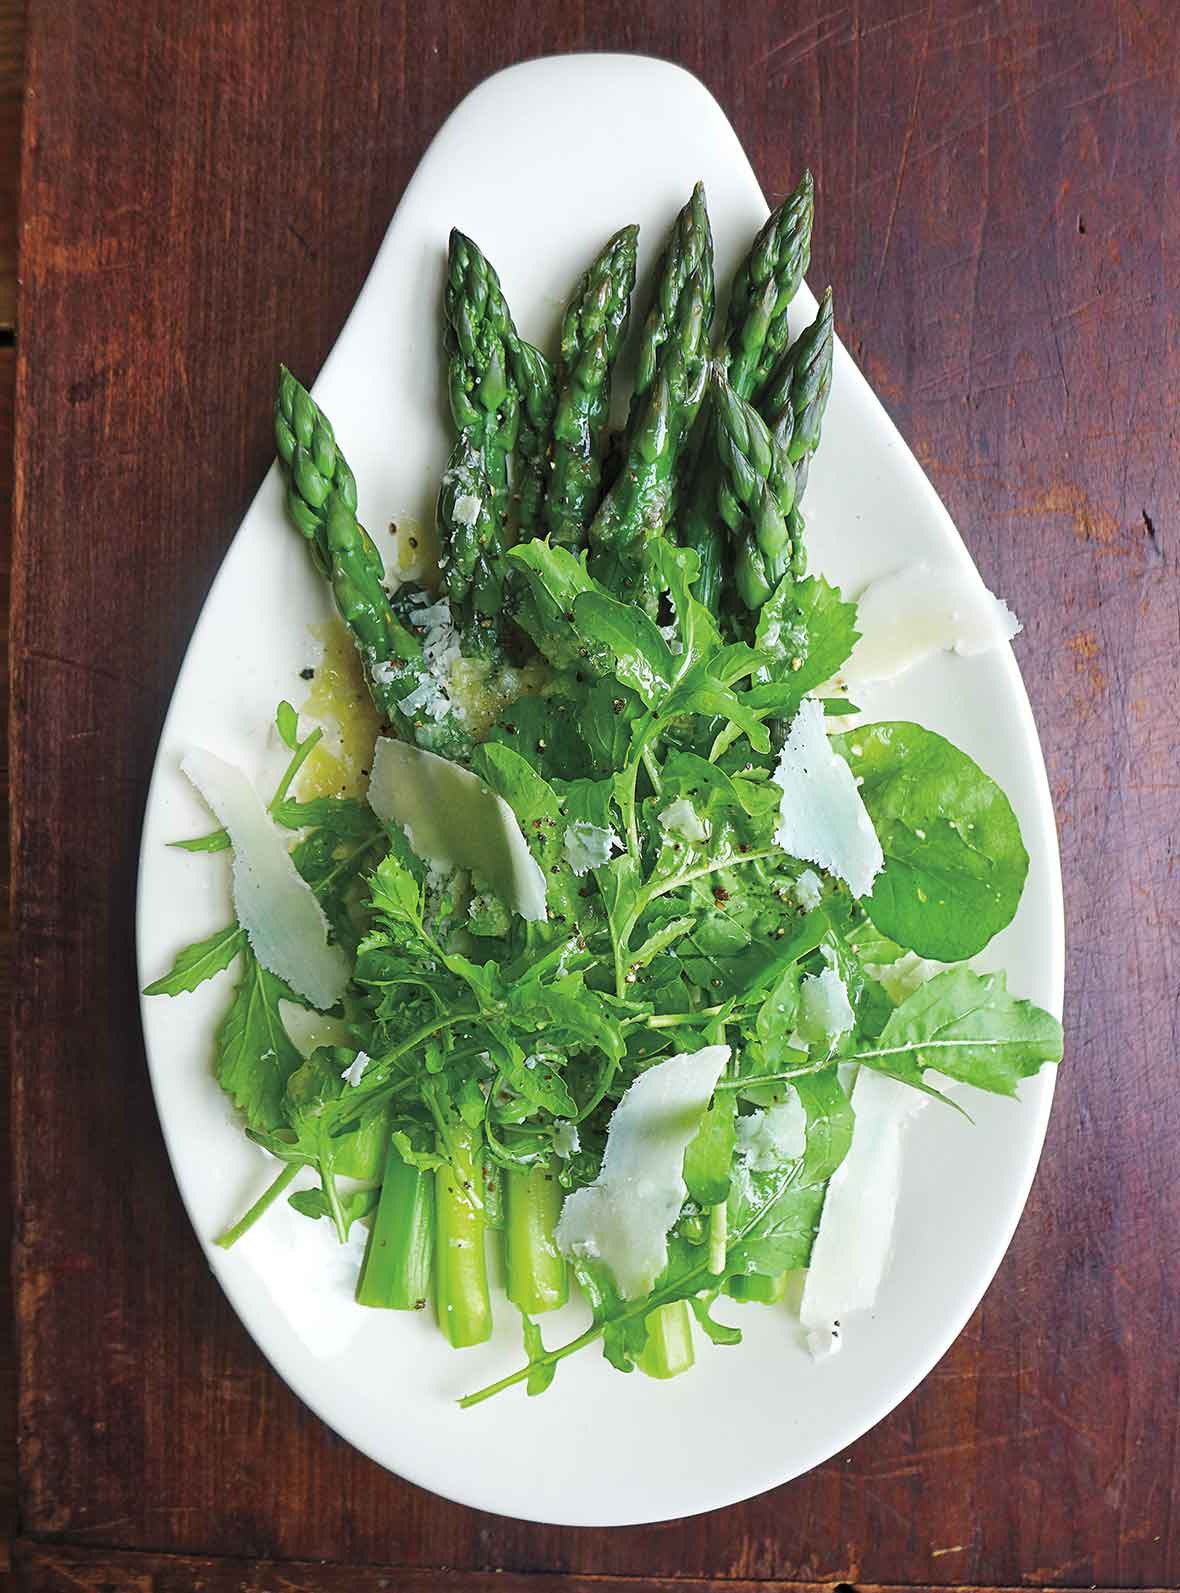 An asparagus and arugula salad topped with Parmesan on a teardrop-shaped plate.